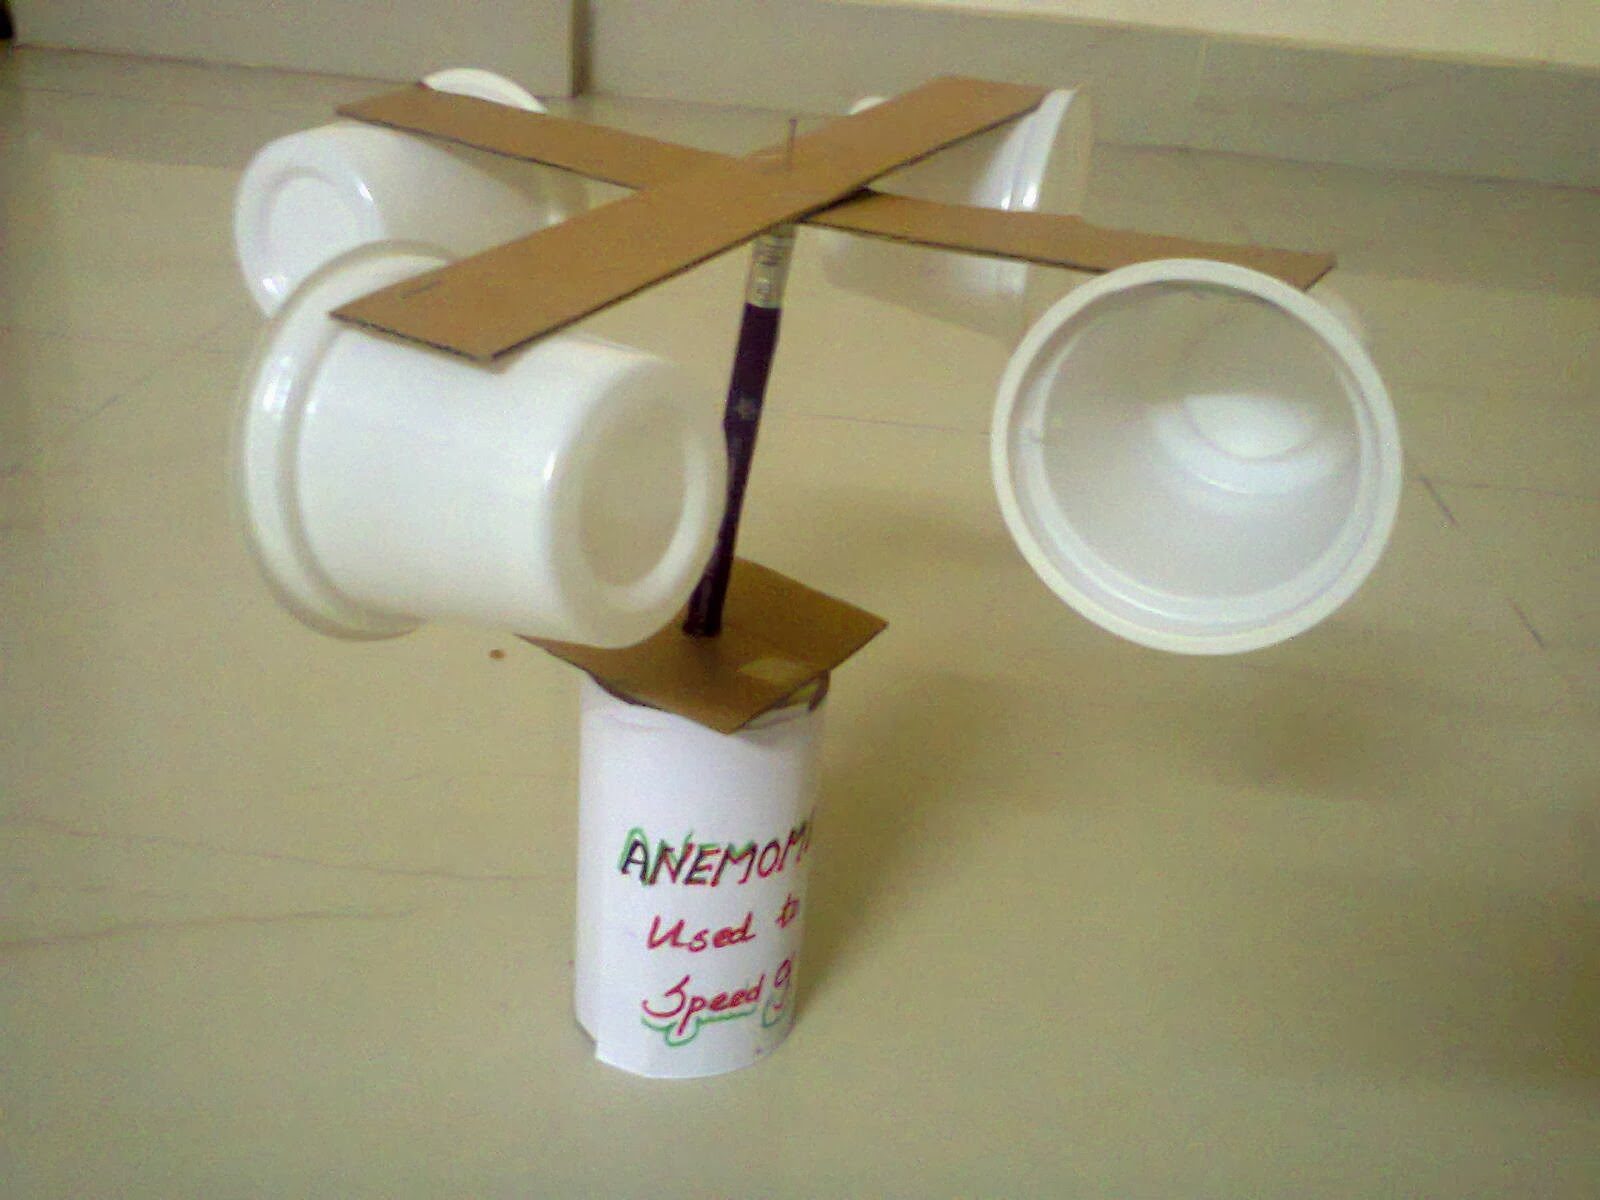 Creative of rainy anemometer for Waste material project